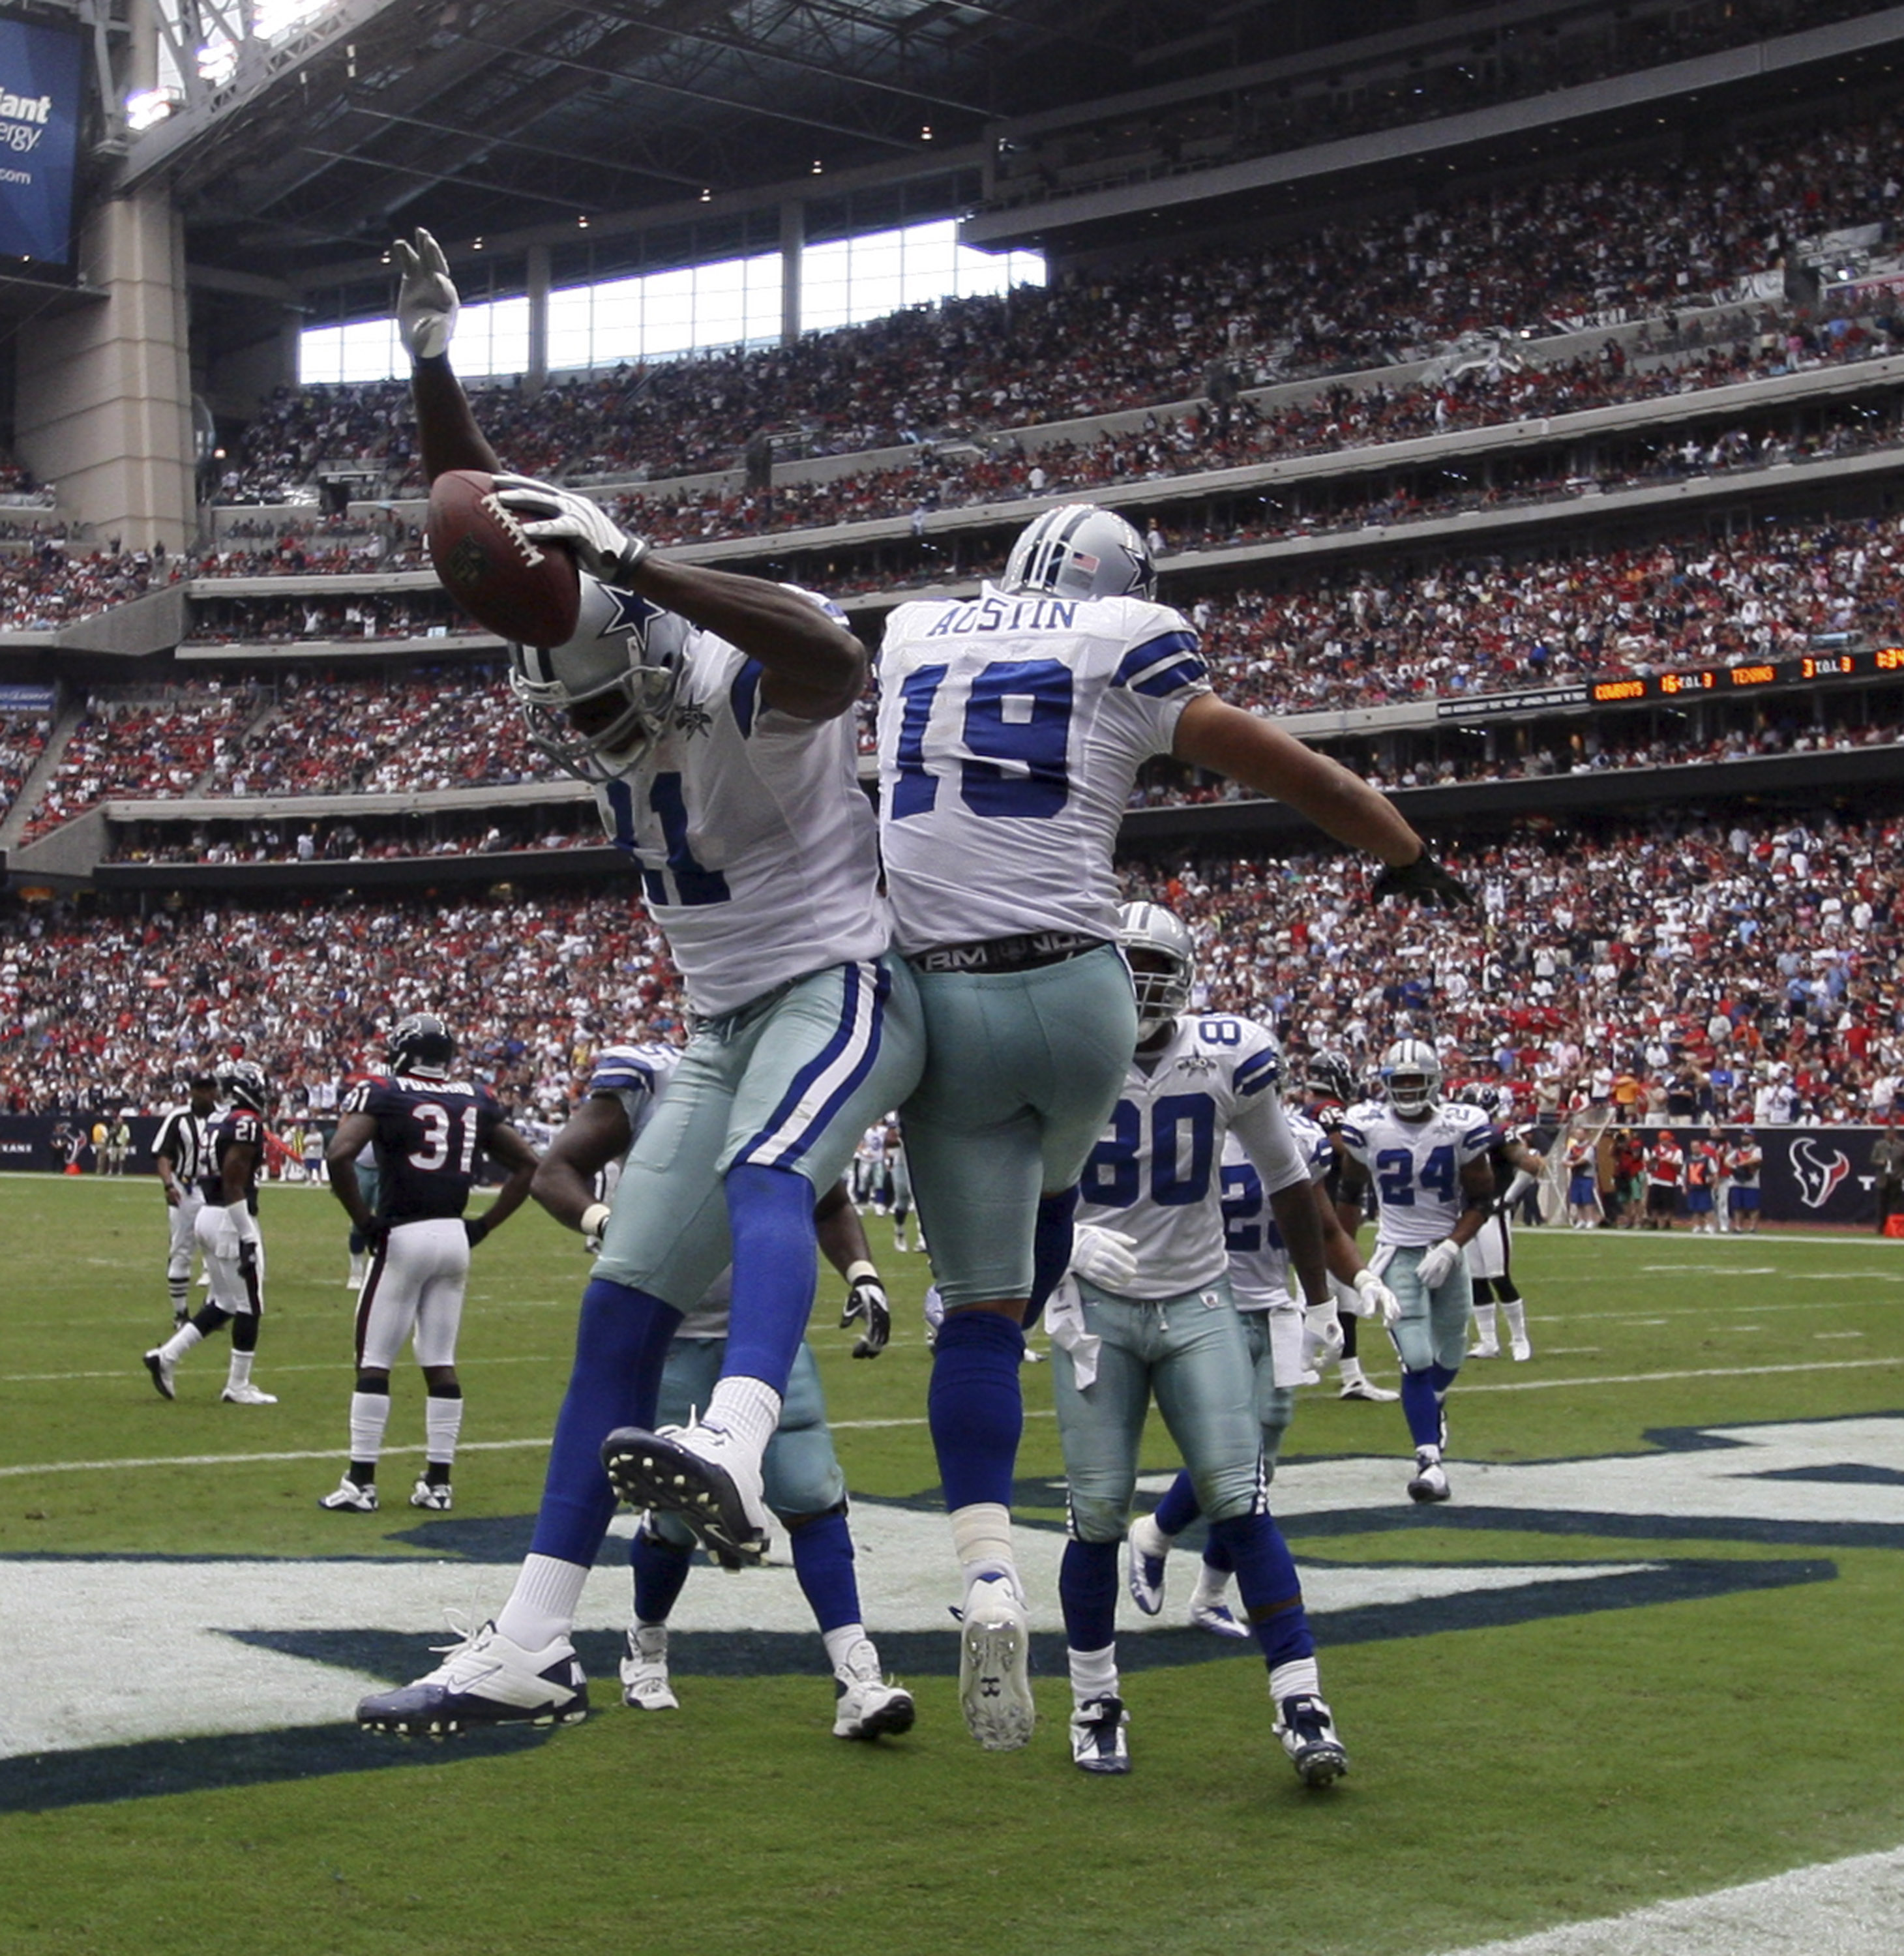 HOUSTON - SEPTEMBER 26:  Wide receiver Roy Williams #11 and Miles Austin #11 celebrate after scoring on a 15 yard pass from Tony Romo in the third quarter at Reliant Stadium on September 26, 2010 in Houston, Texas.  (Photo by Bob Levey/Getty Images)